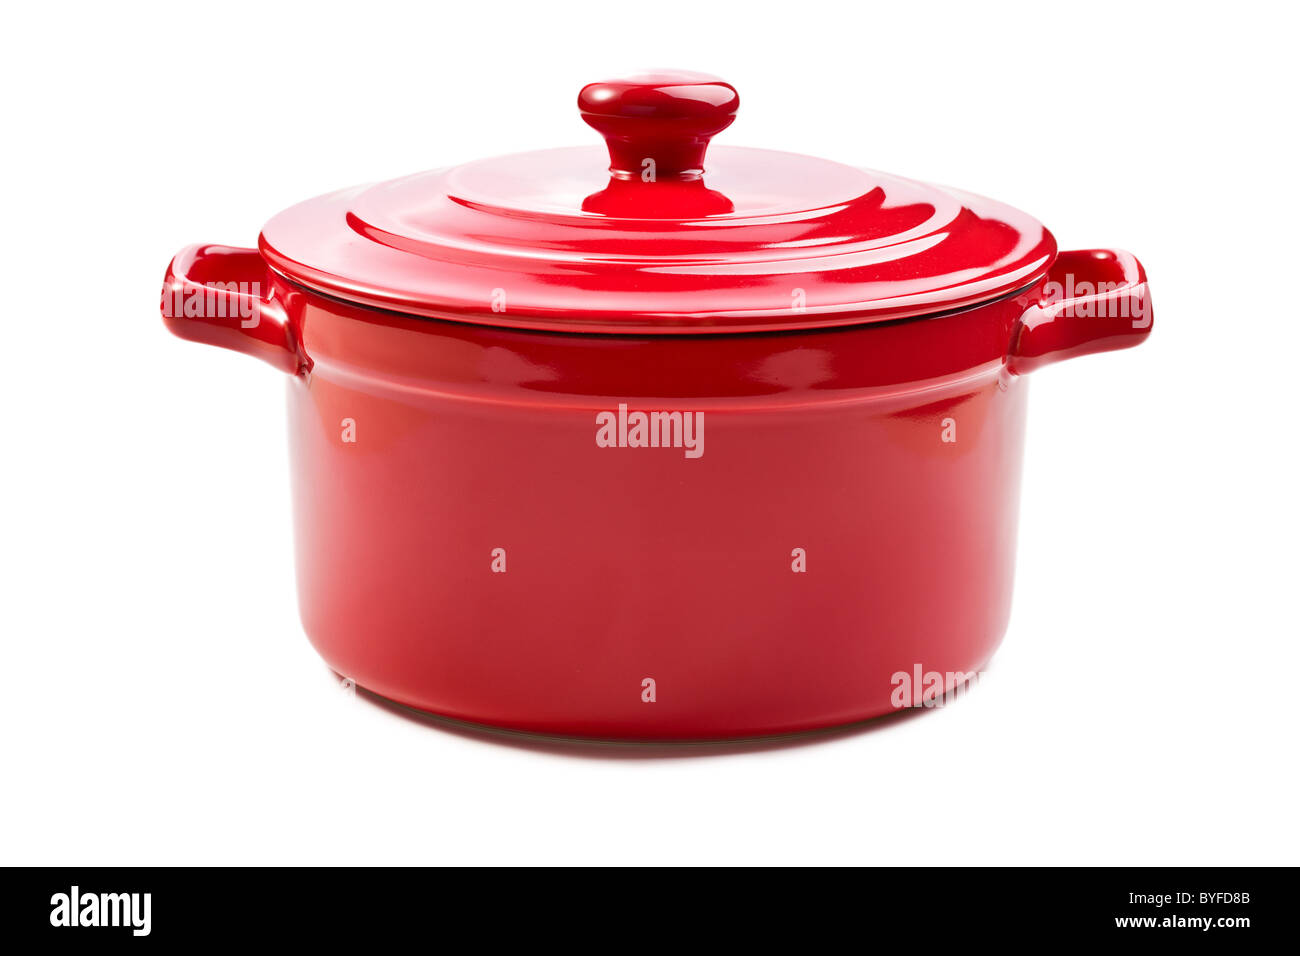 the red pot with cover - Stock Image